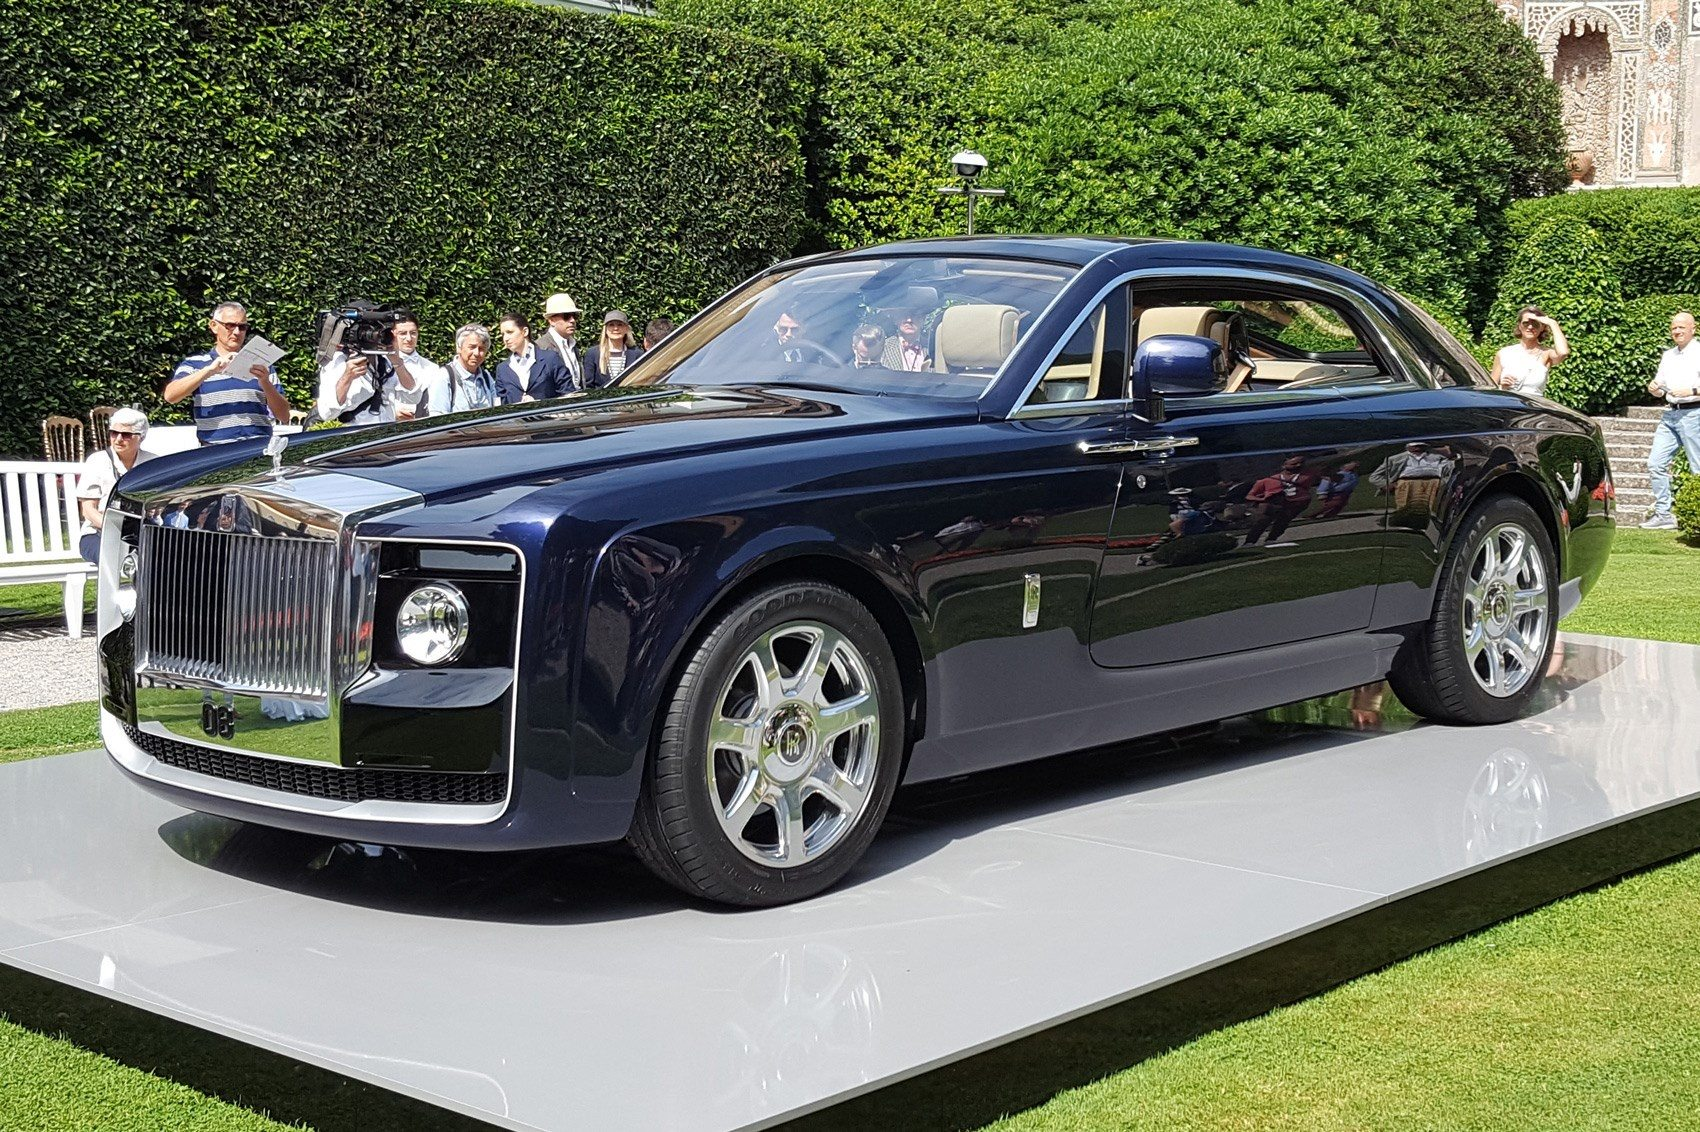 Why is it that Rolls Royce cars are expensive  - Quora f4e2d97b7